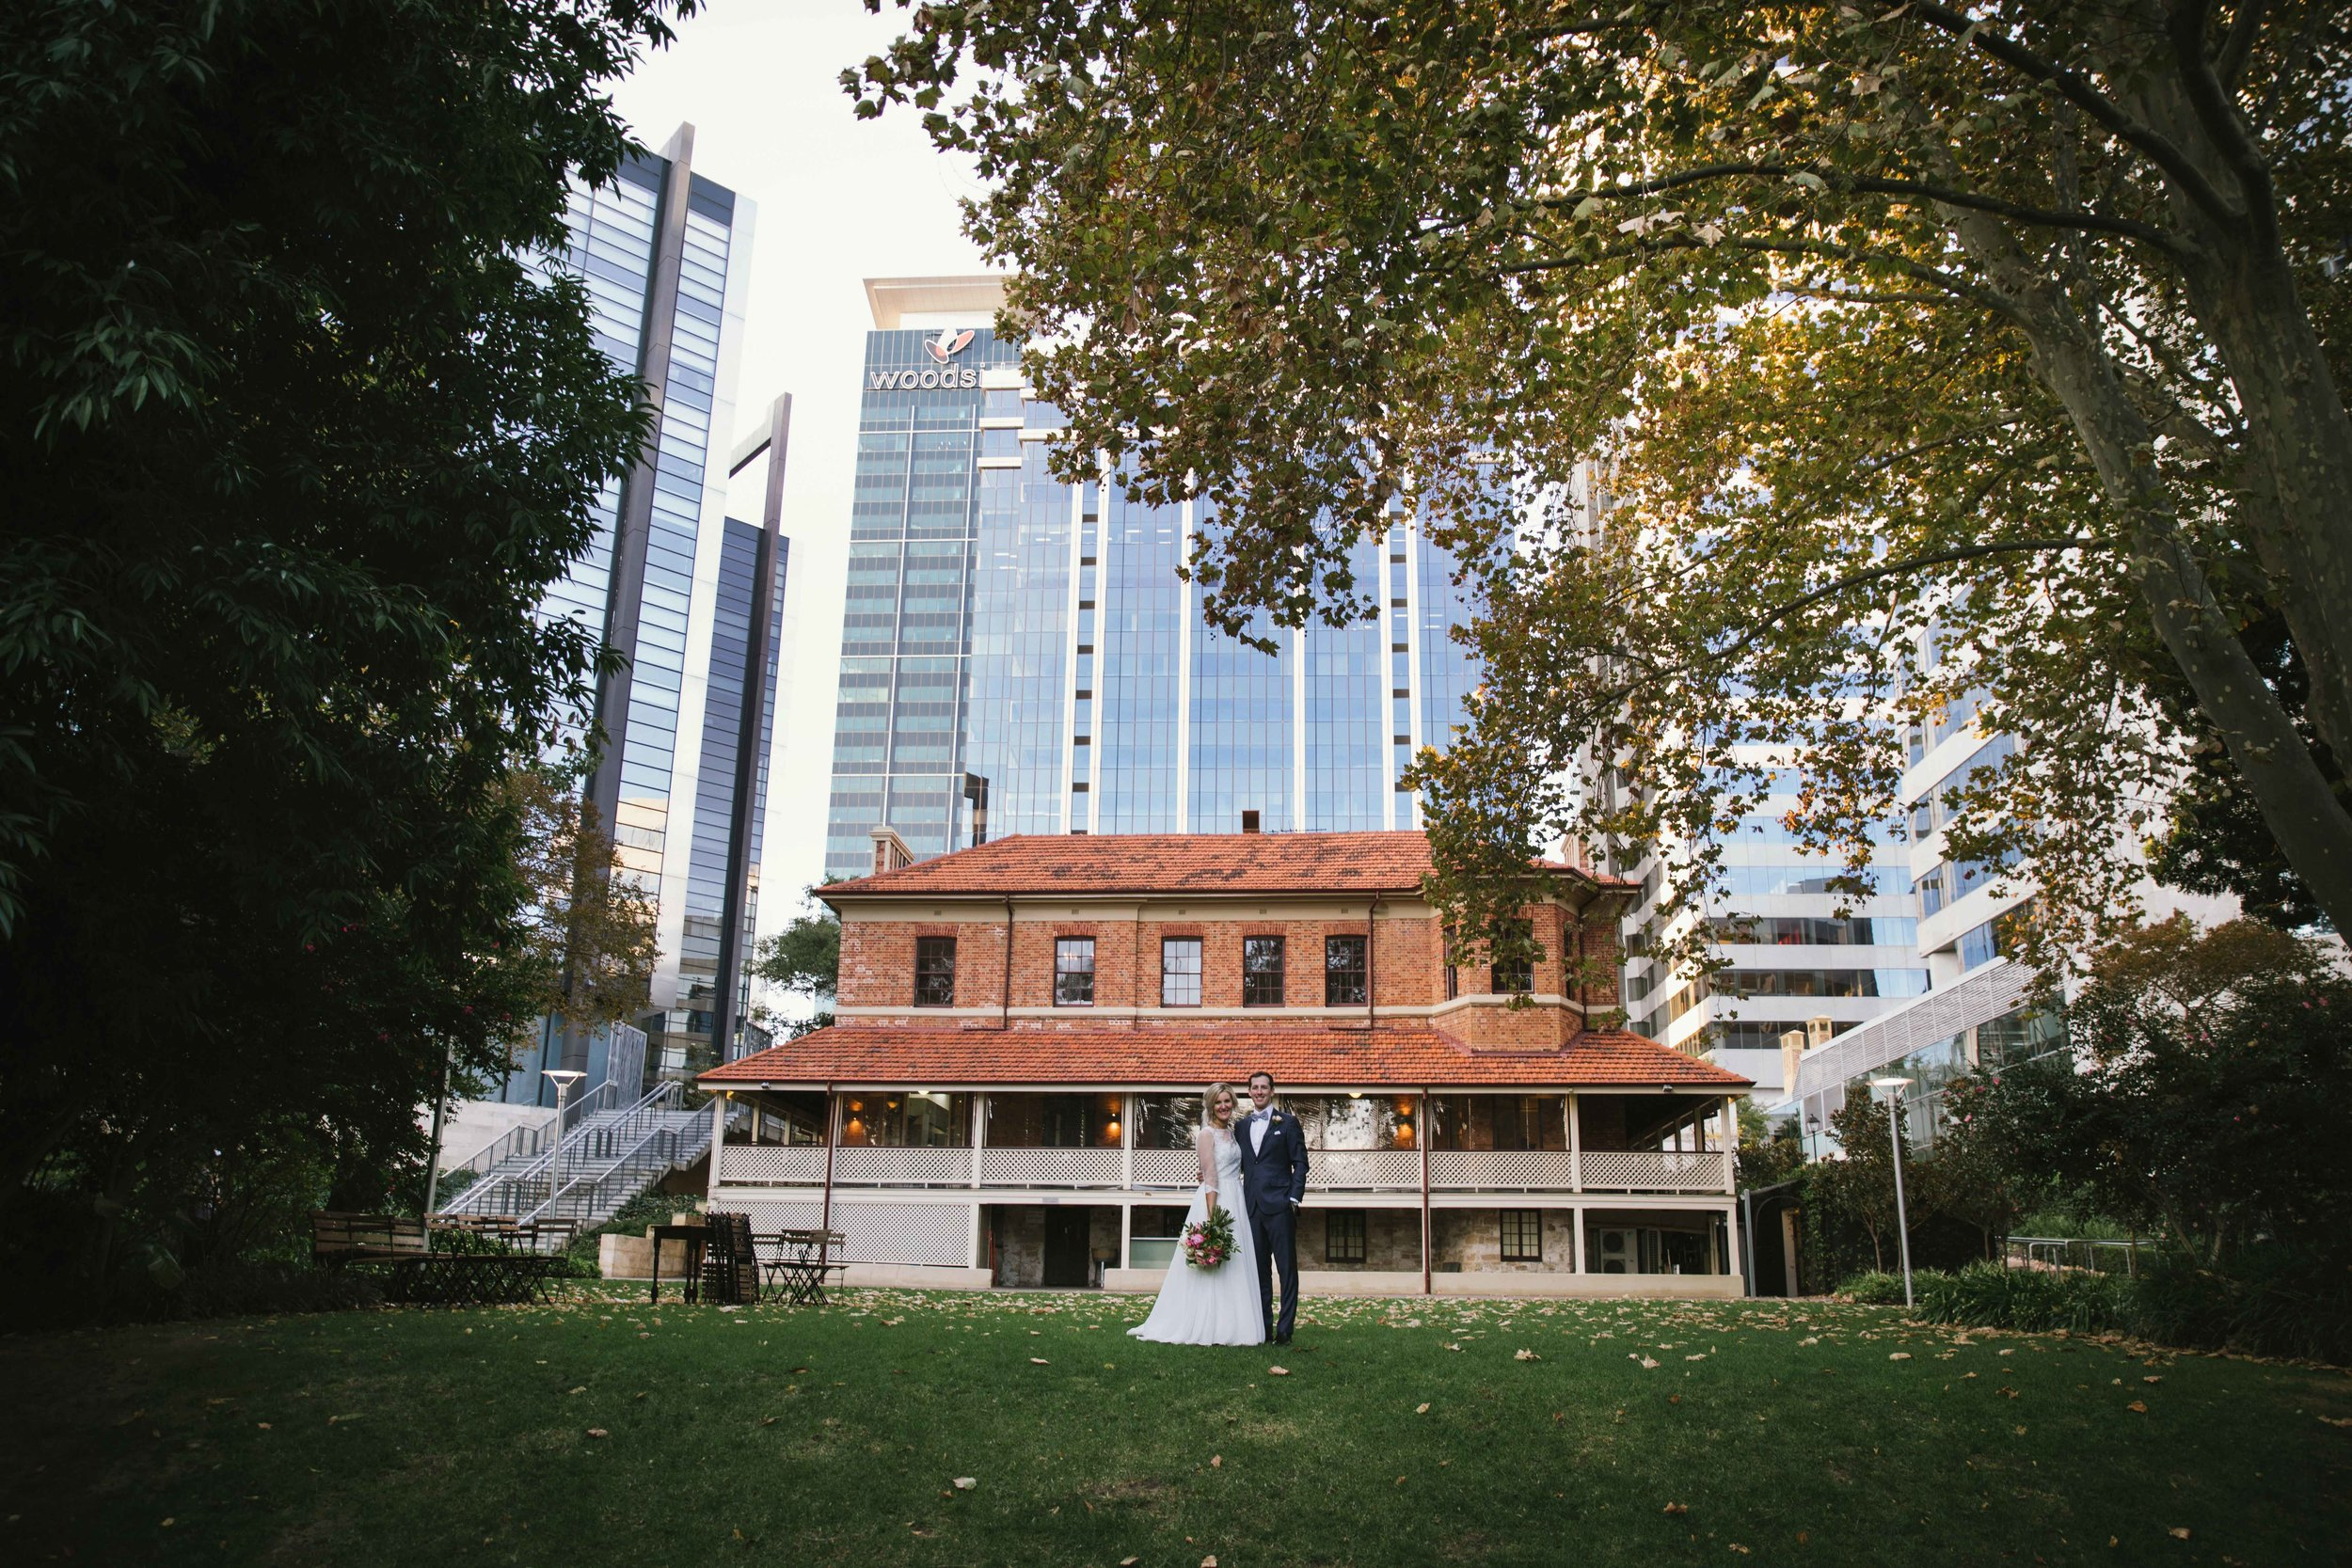 Lamonts Bishops House City Urban Perth Wheatbelt Avon Valley Wedding Photographer Photography (58).jpg